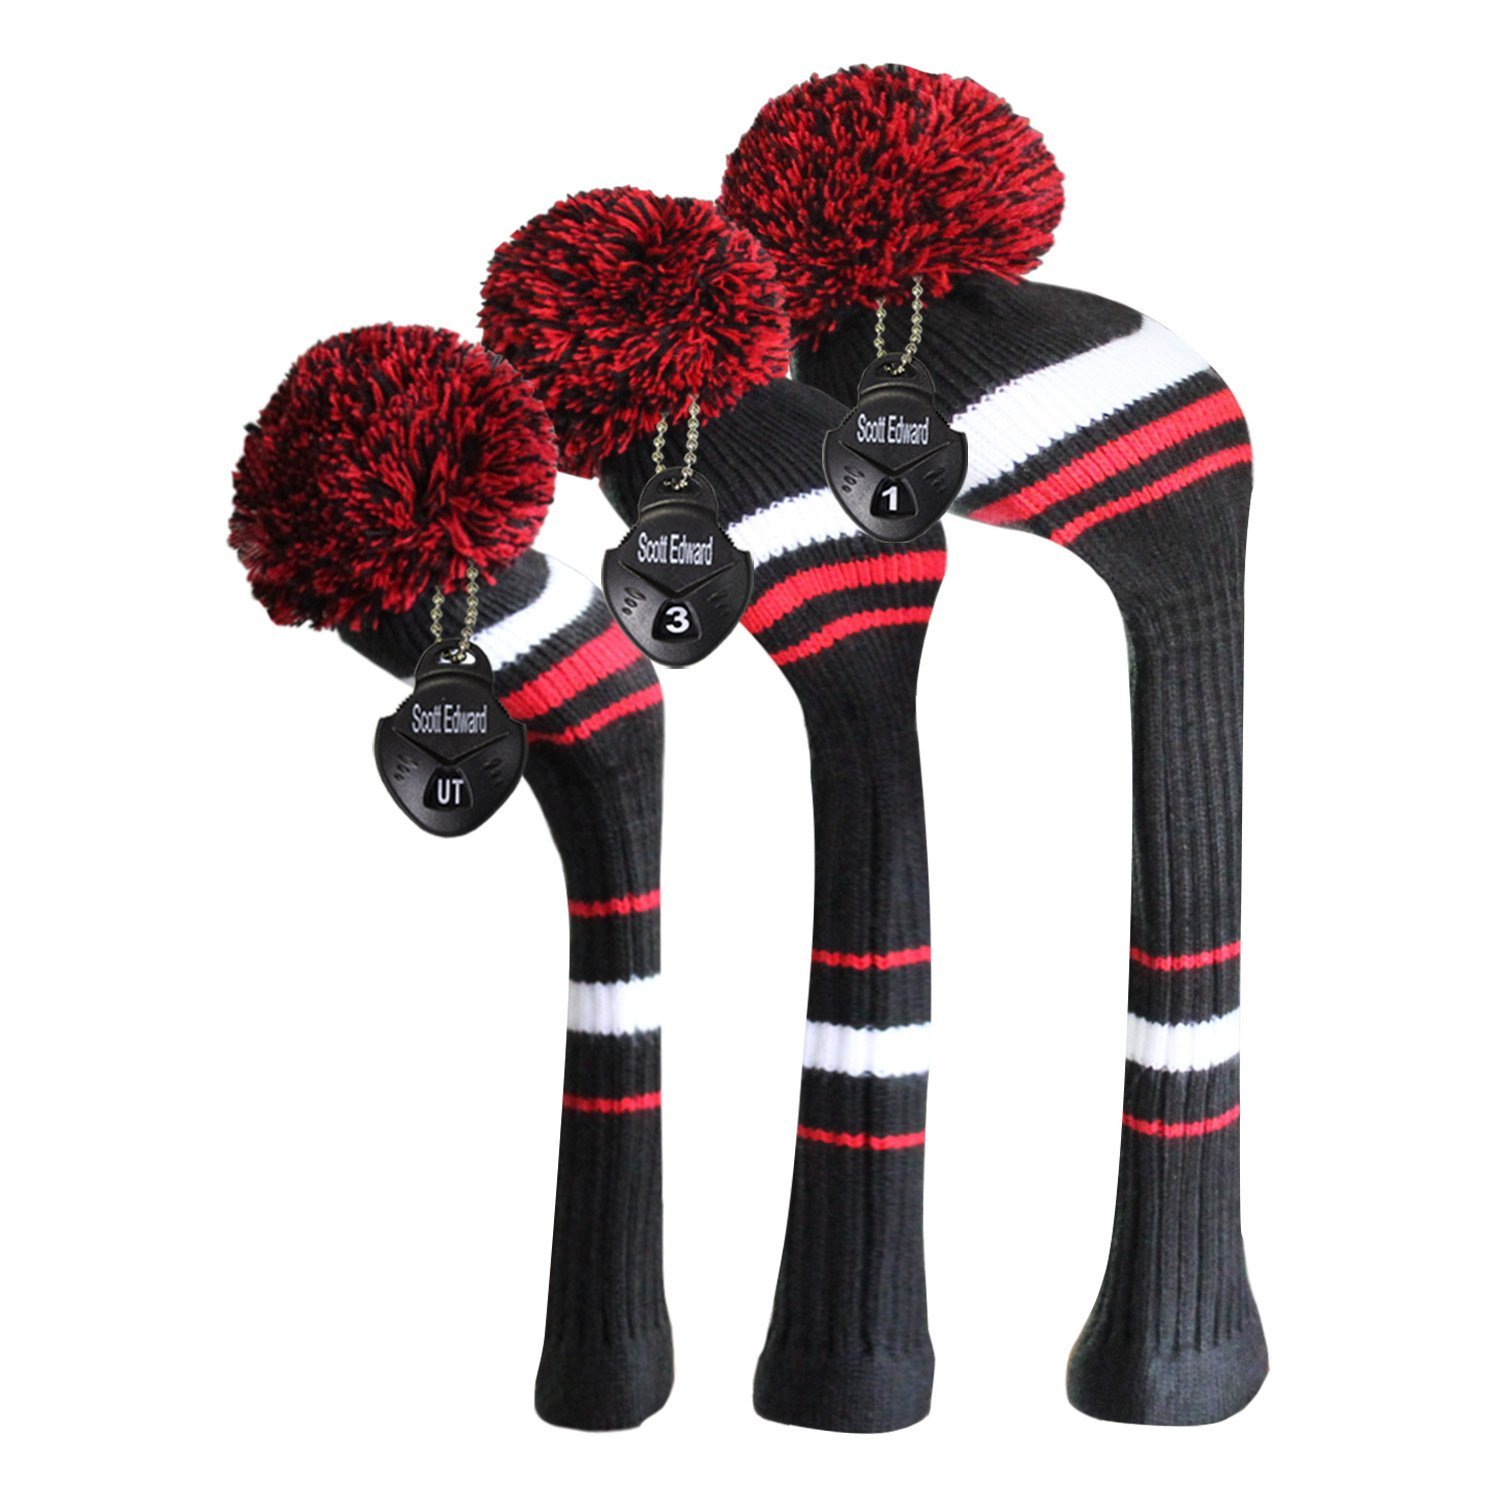 Scott Edward Knitted Golf Head Covers Set Black White Red Stripes Style 3 PCS/Set for Driver(460cc), Fairway Wood and Hybrid with Rotating Number Tags, Soft Acrylic Yarn Double-Layers Knitted